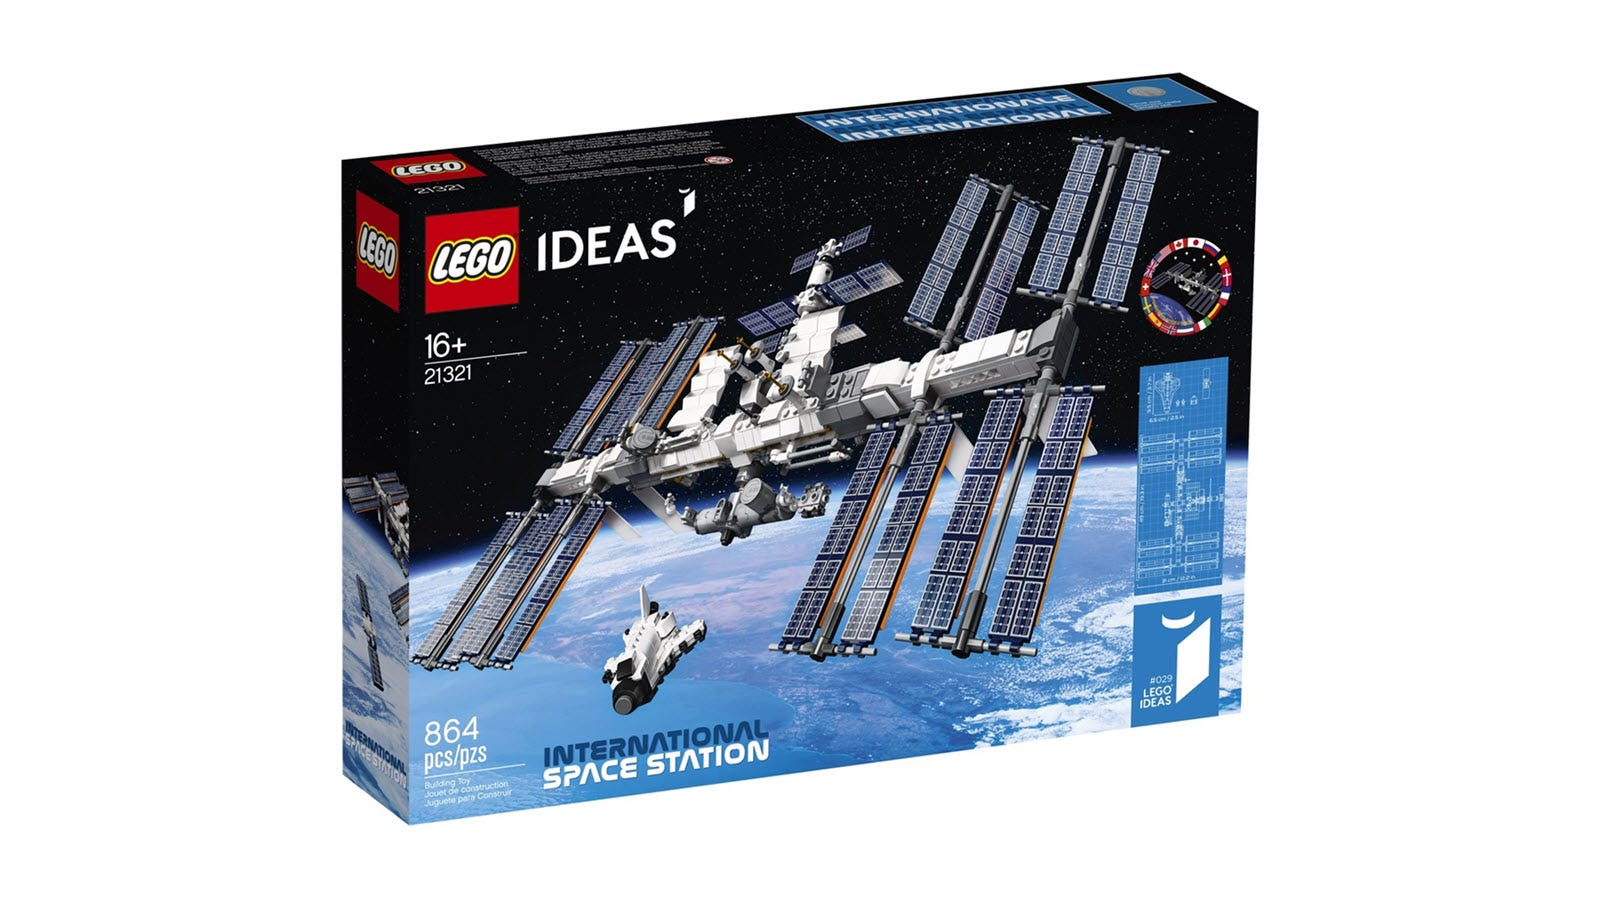 The LEGO ISS box, featuring the space station over an image of Earth